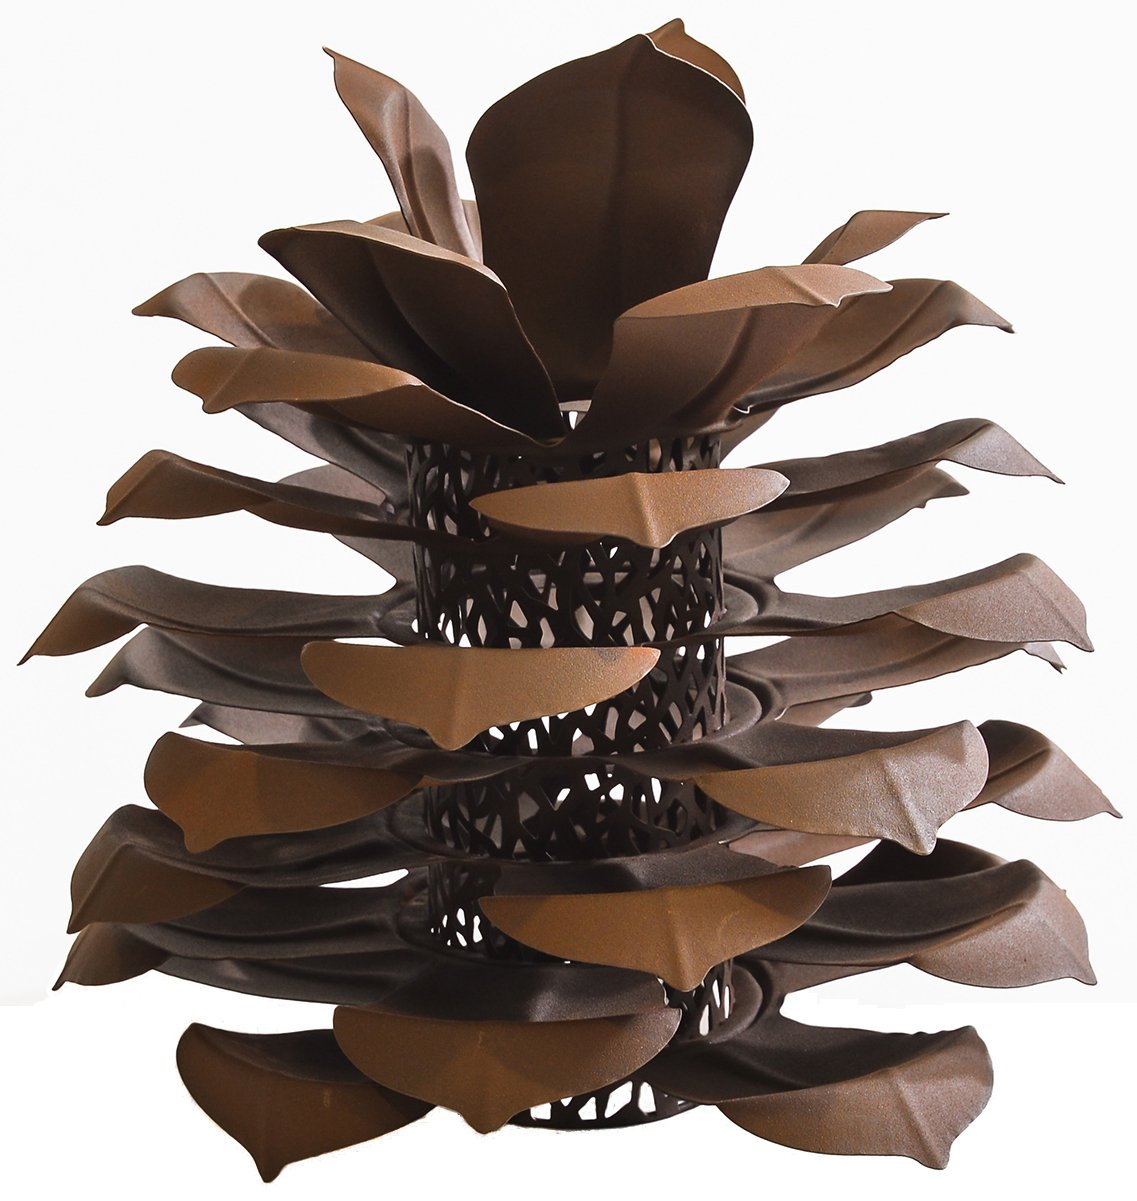 Desert Steel Pinecone Luminary – Handcrafted Rustic Home Décor